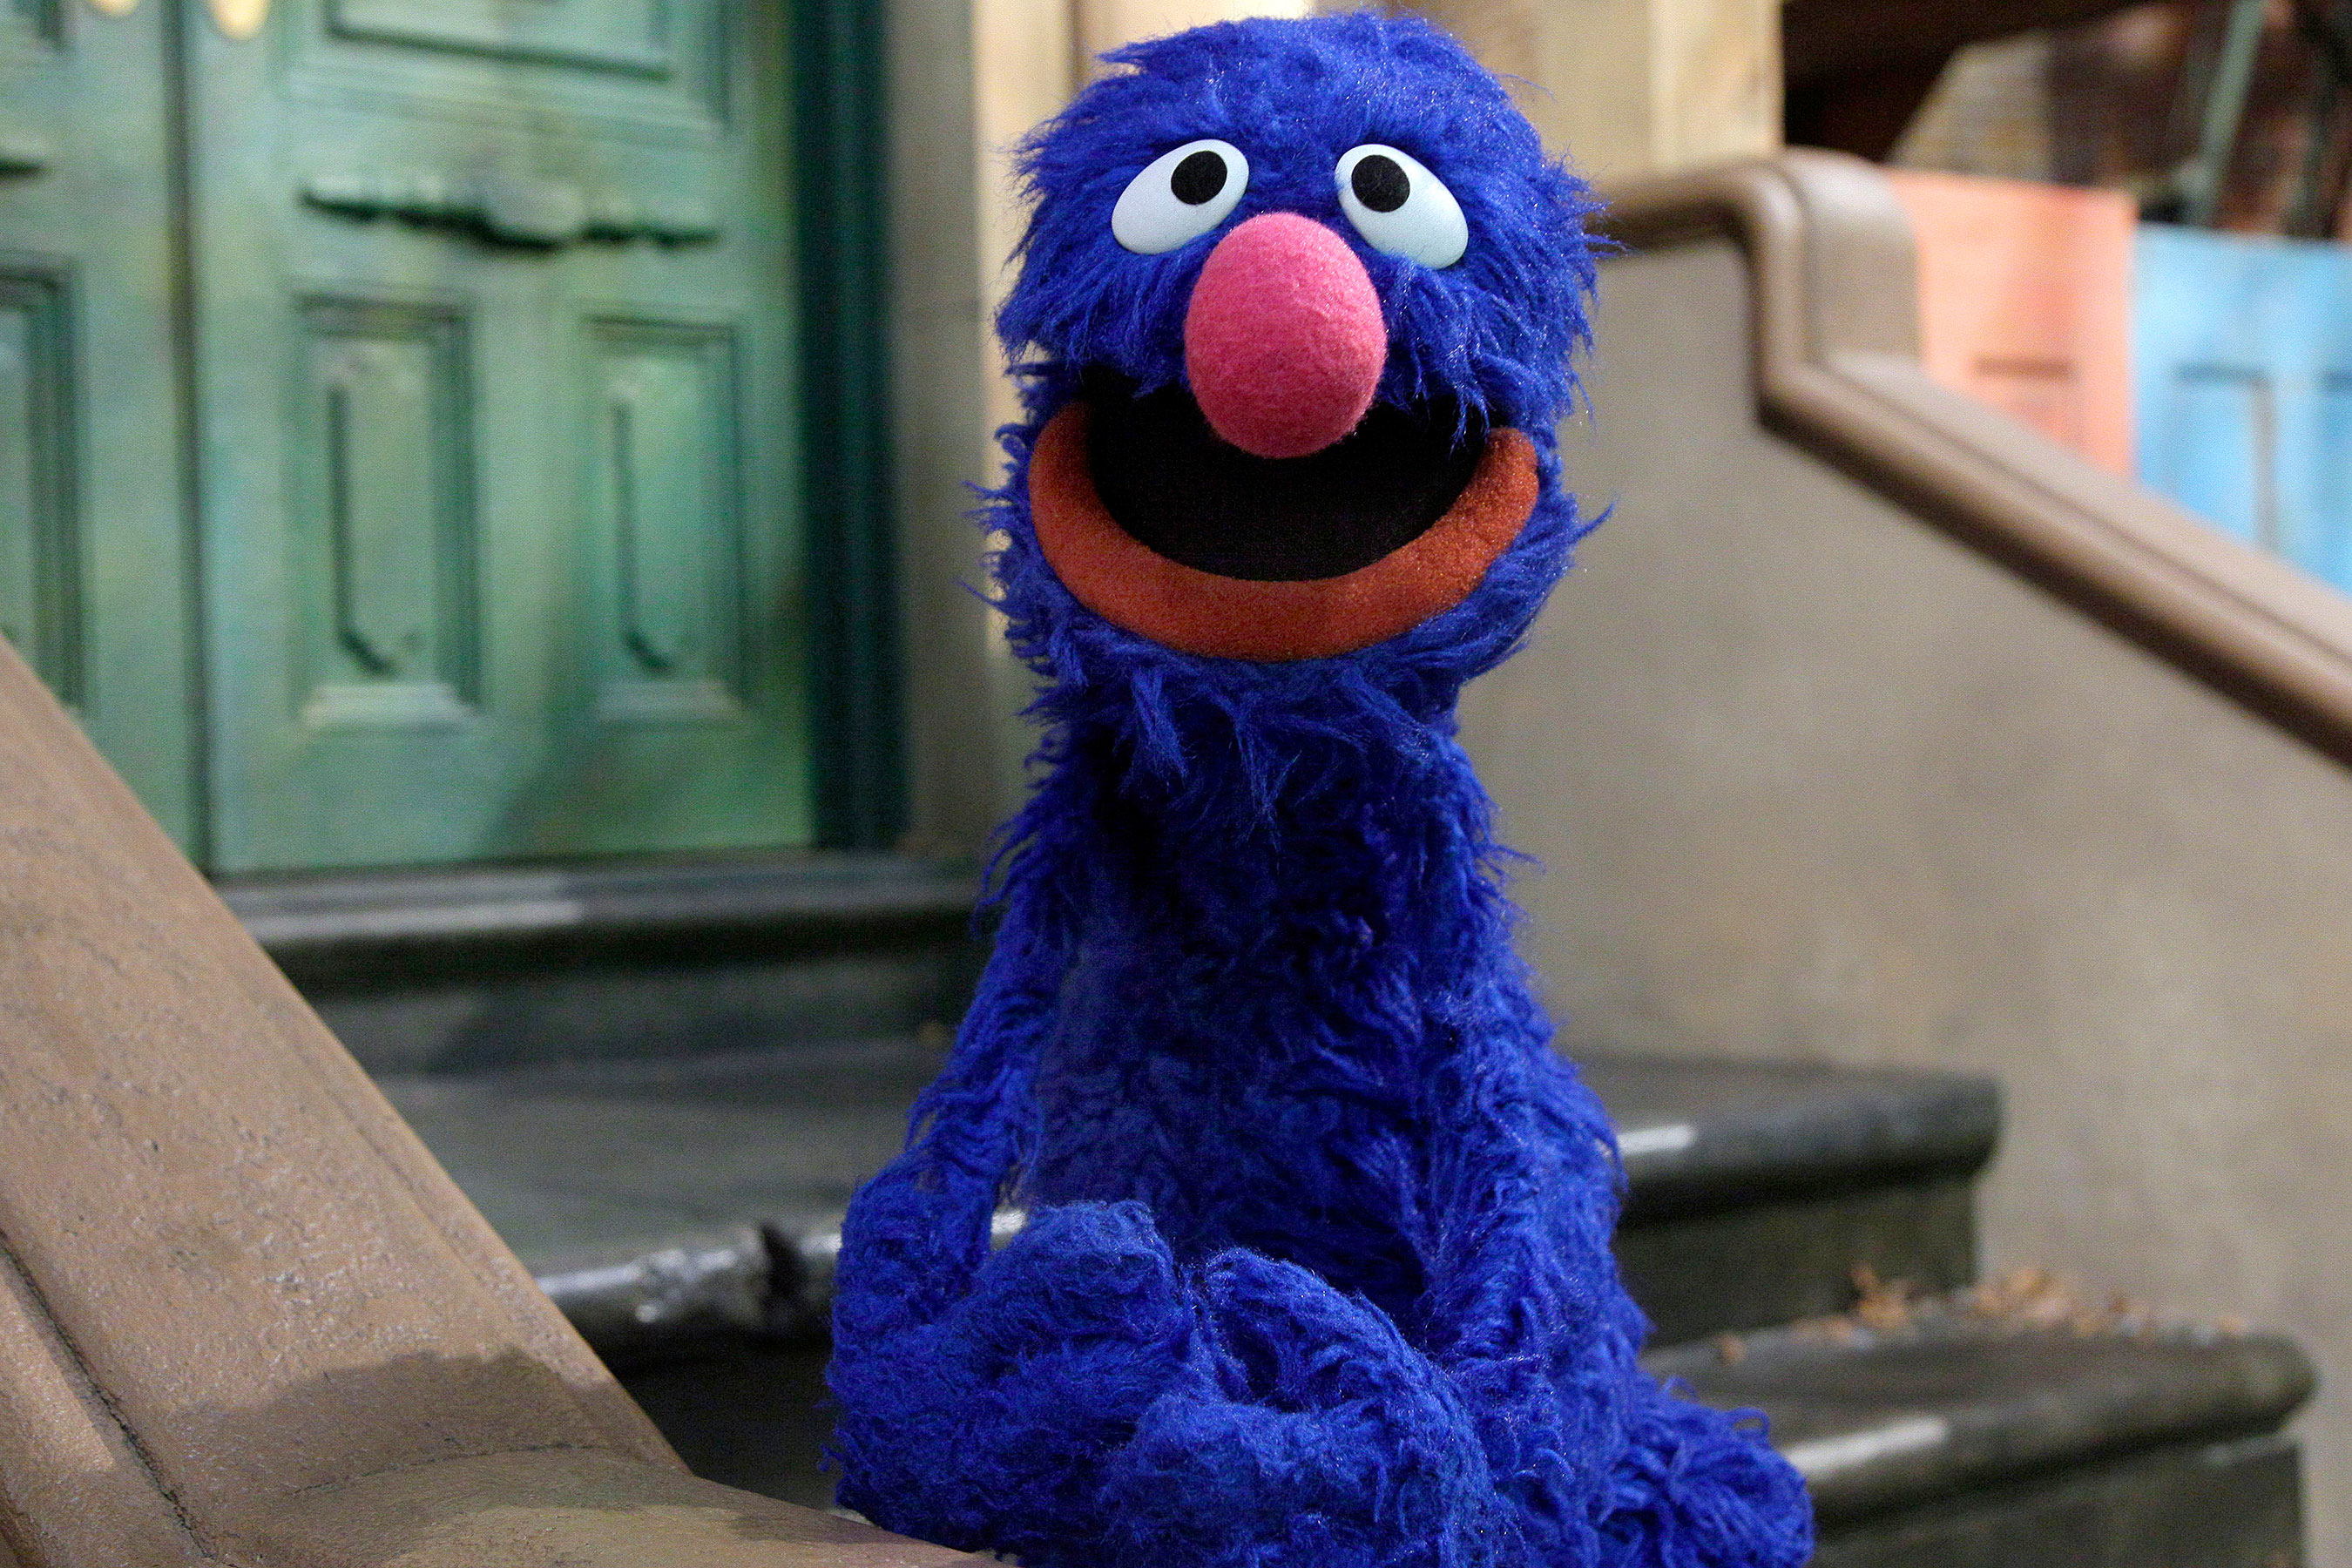 Sesame Street fans convinced Grover just dropped an f-bomb 1